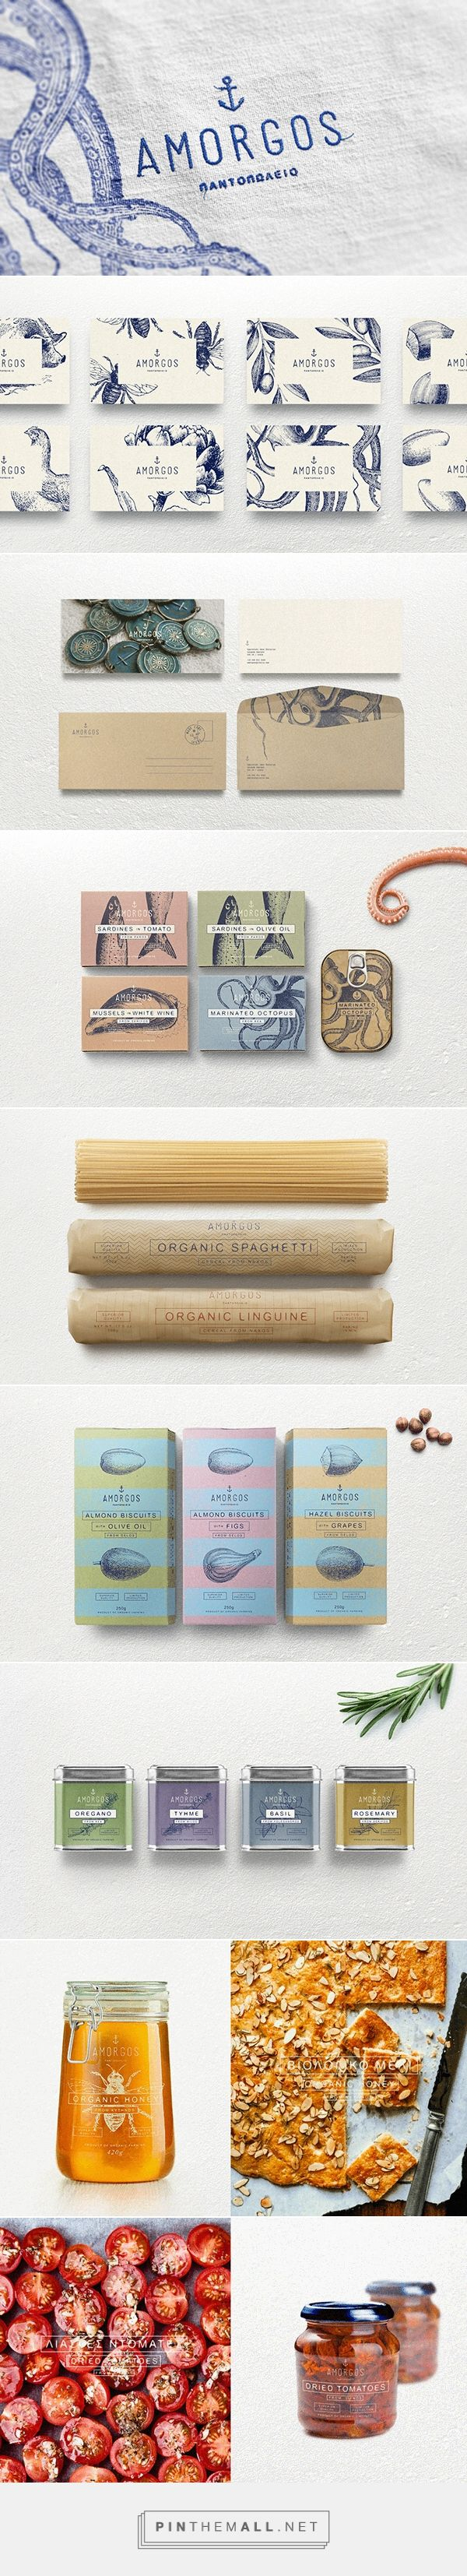 Amorgos identity packaging branding on Behance via Pier / Design Agency curated by Packaging Diva PD. Nouvelle identité pour une épicerie fine grecque. New identity for fine groceries (I think)